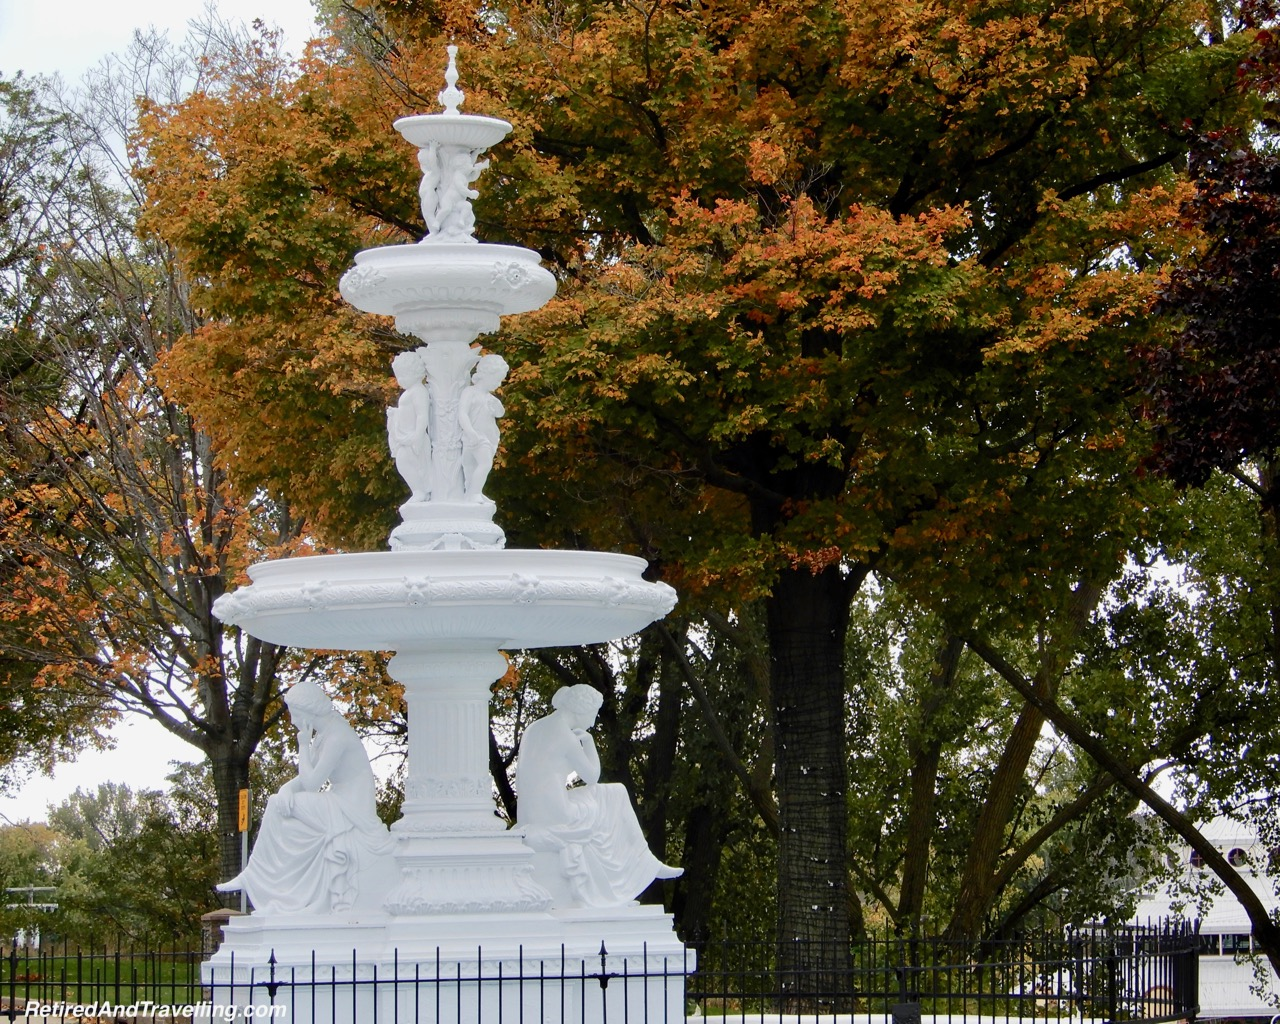 Maids of the Mist statue St Joseph Michigan - Things To Do - 3 Days In Chicago.jpg